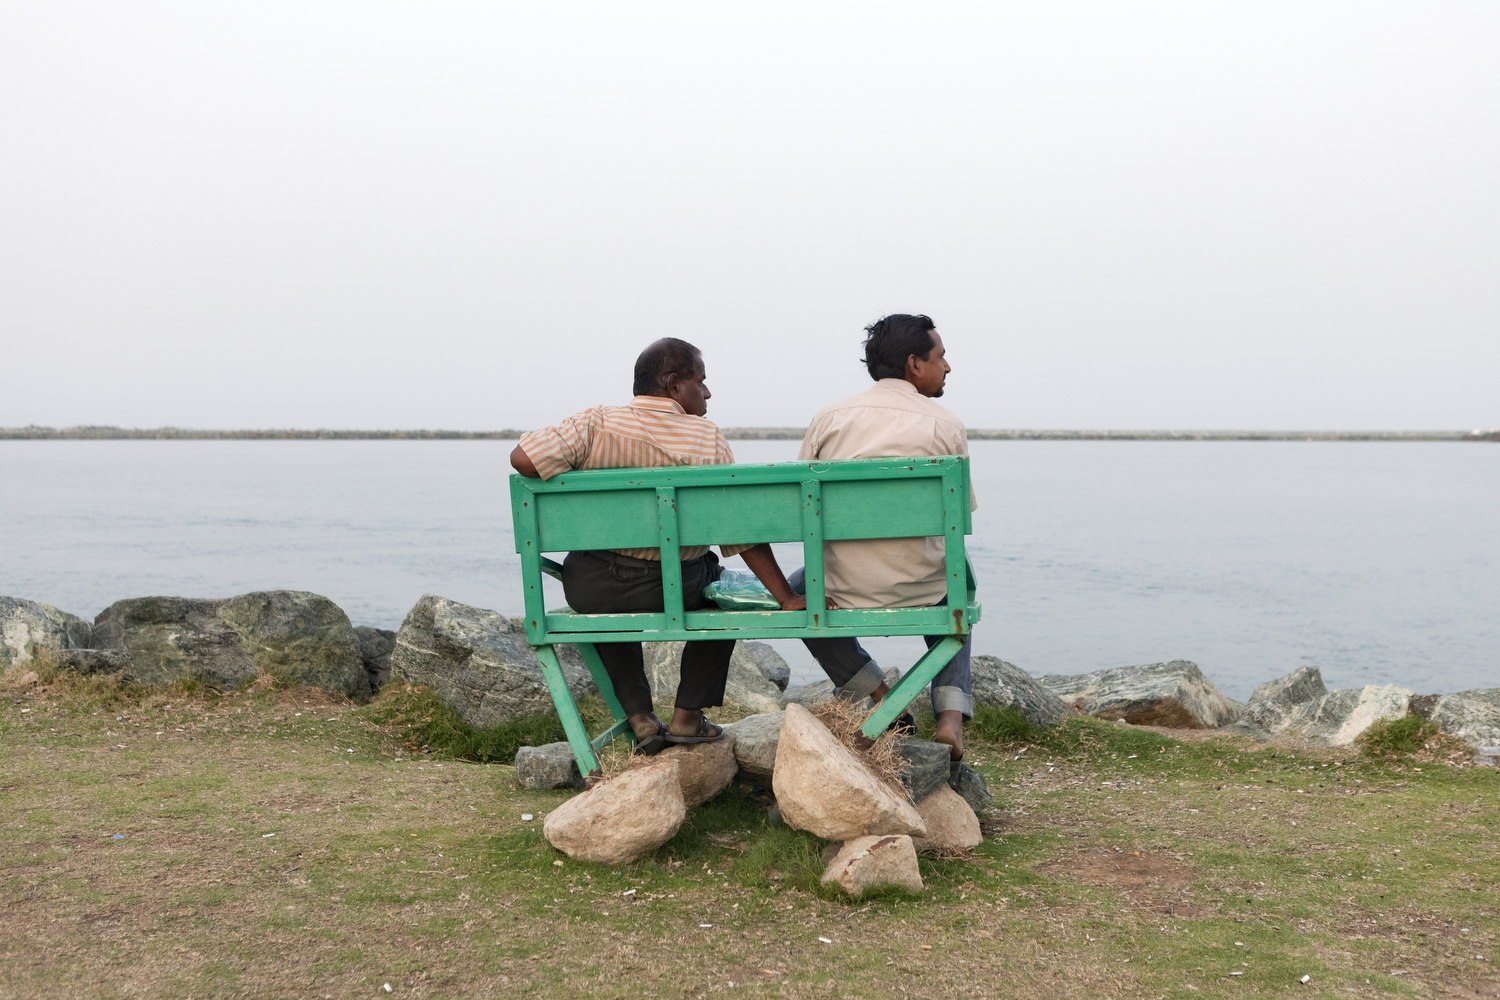 Men relax on a bench at the corniche in Fujairah.